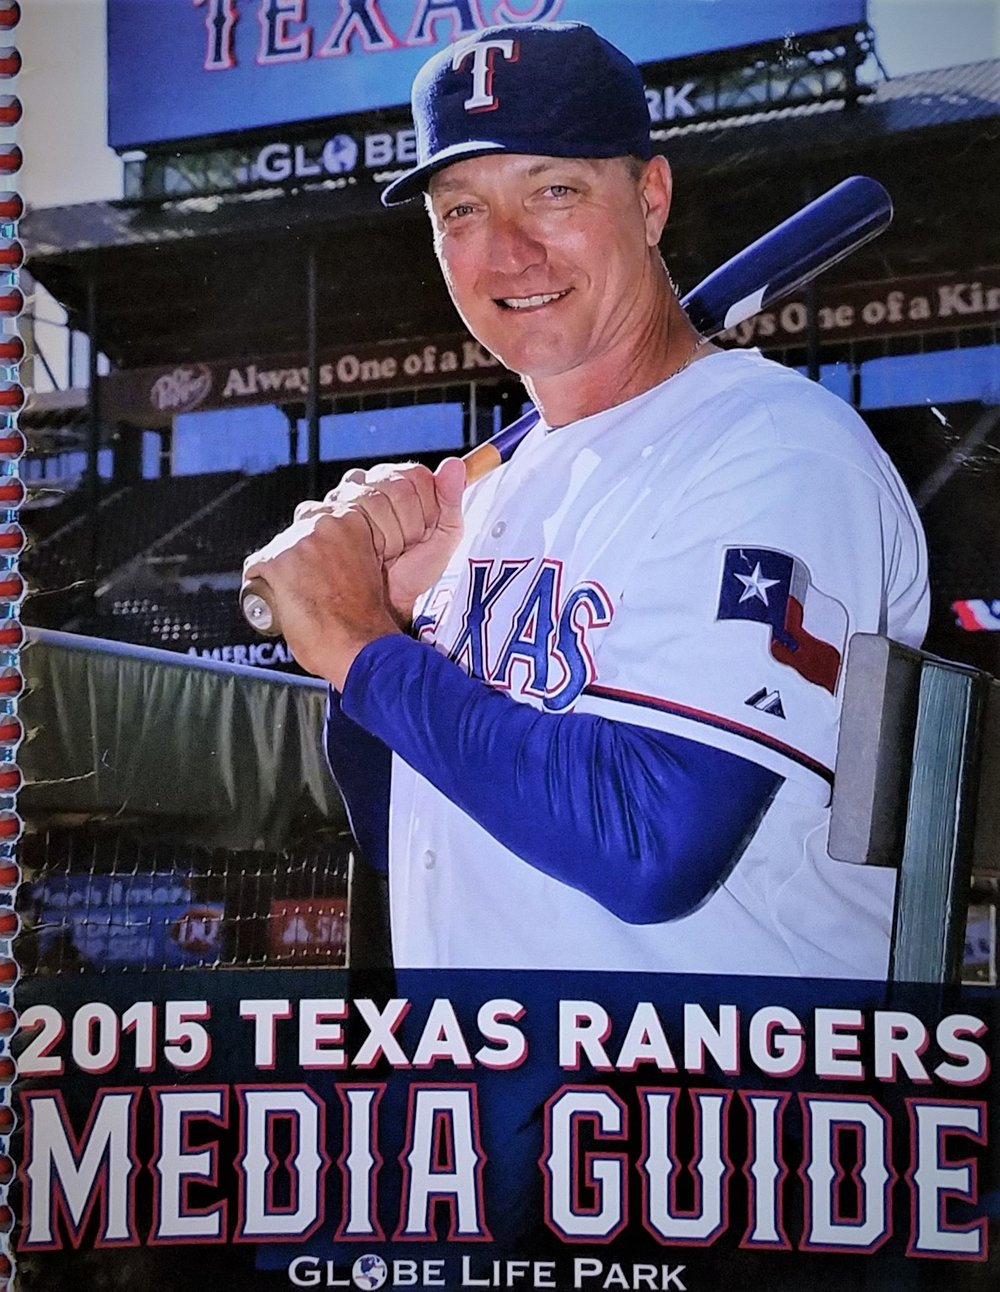 Texas Rangers Media Guide